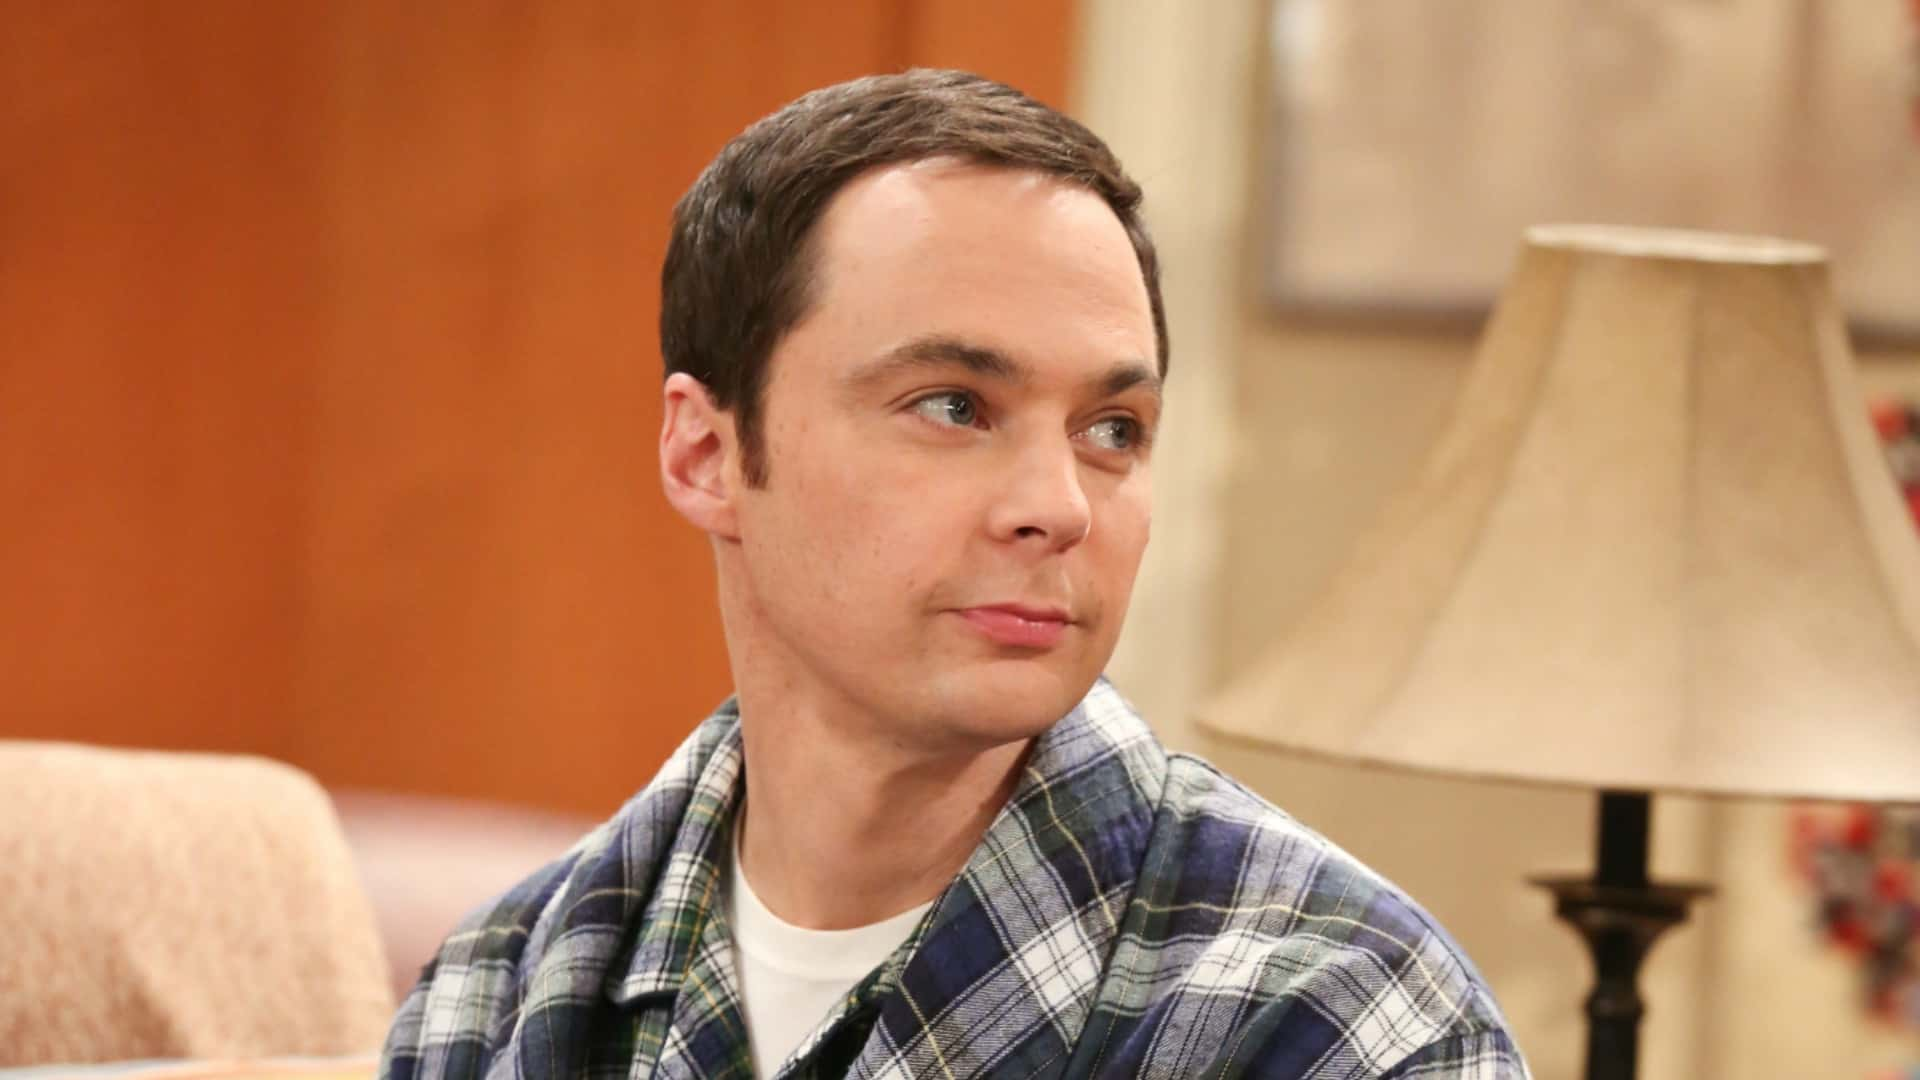 Jim Parsons Pics |Jim Parsons Young